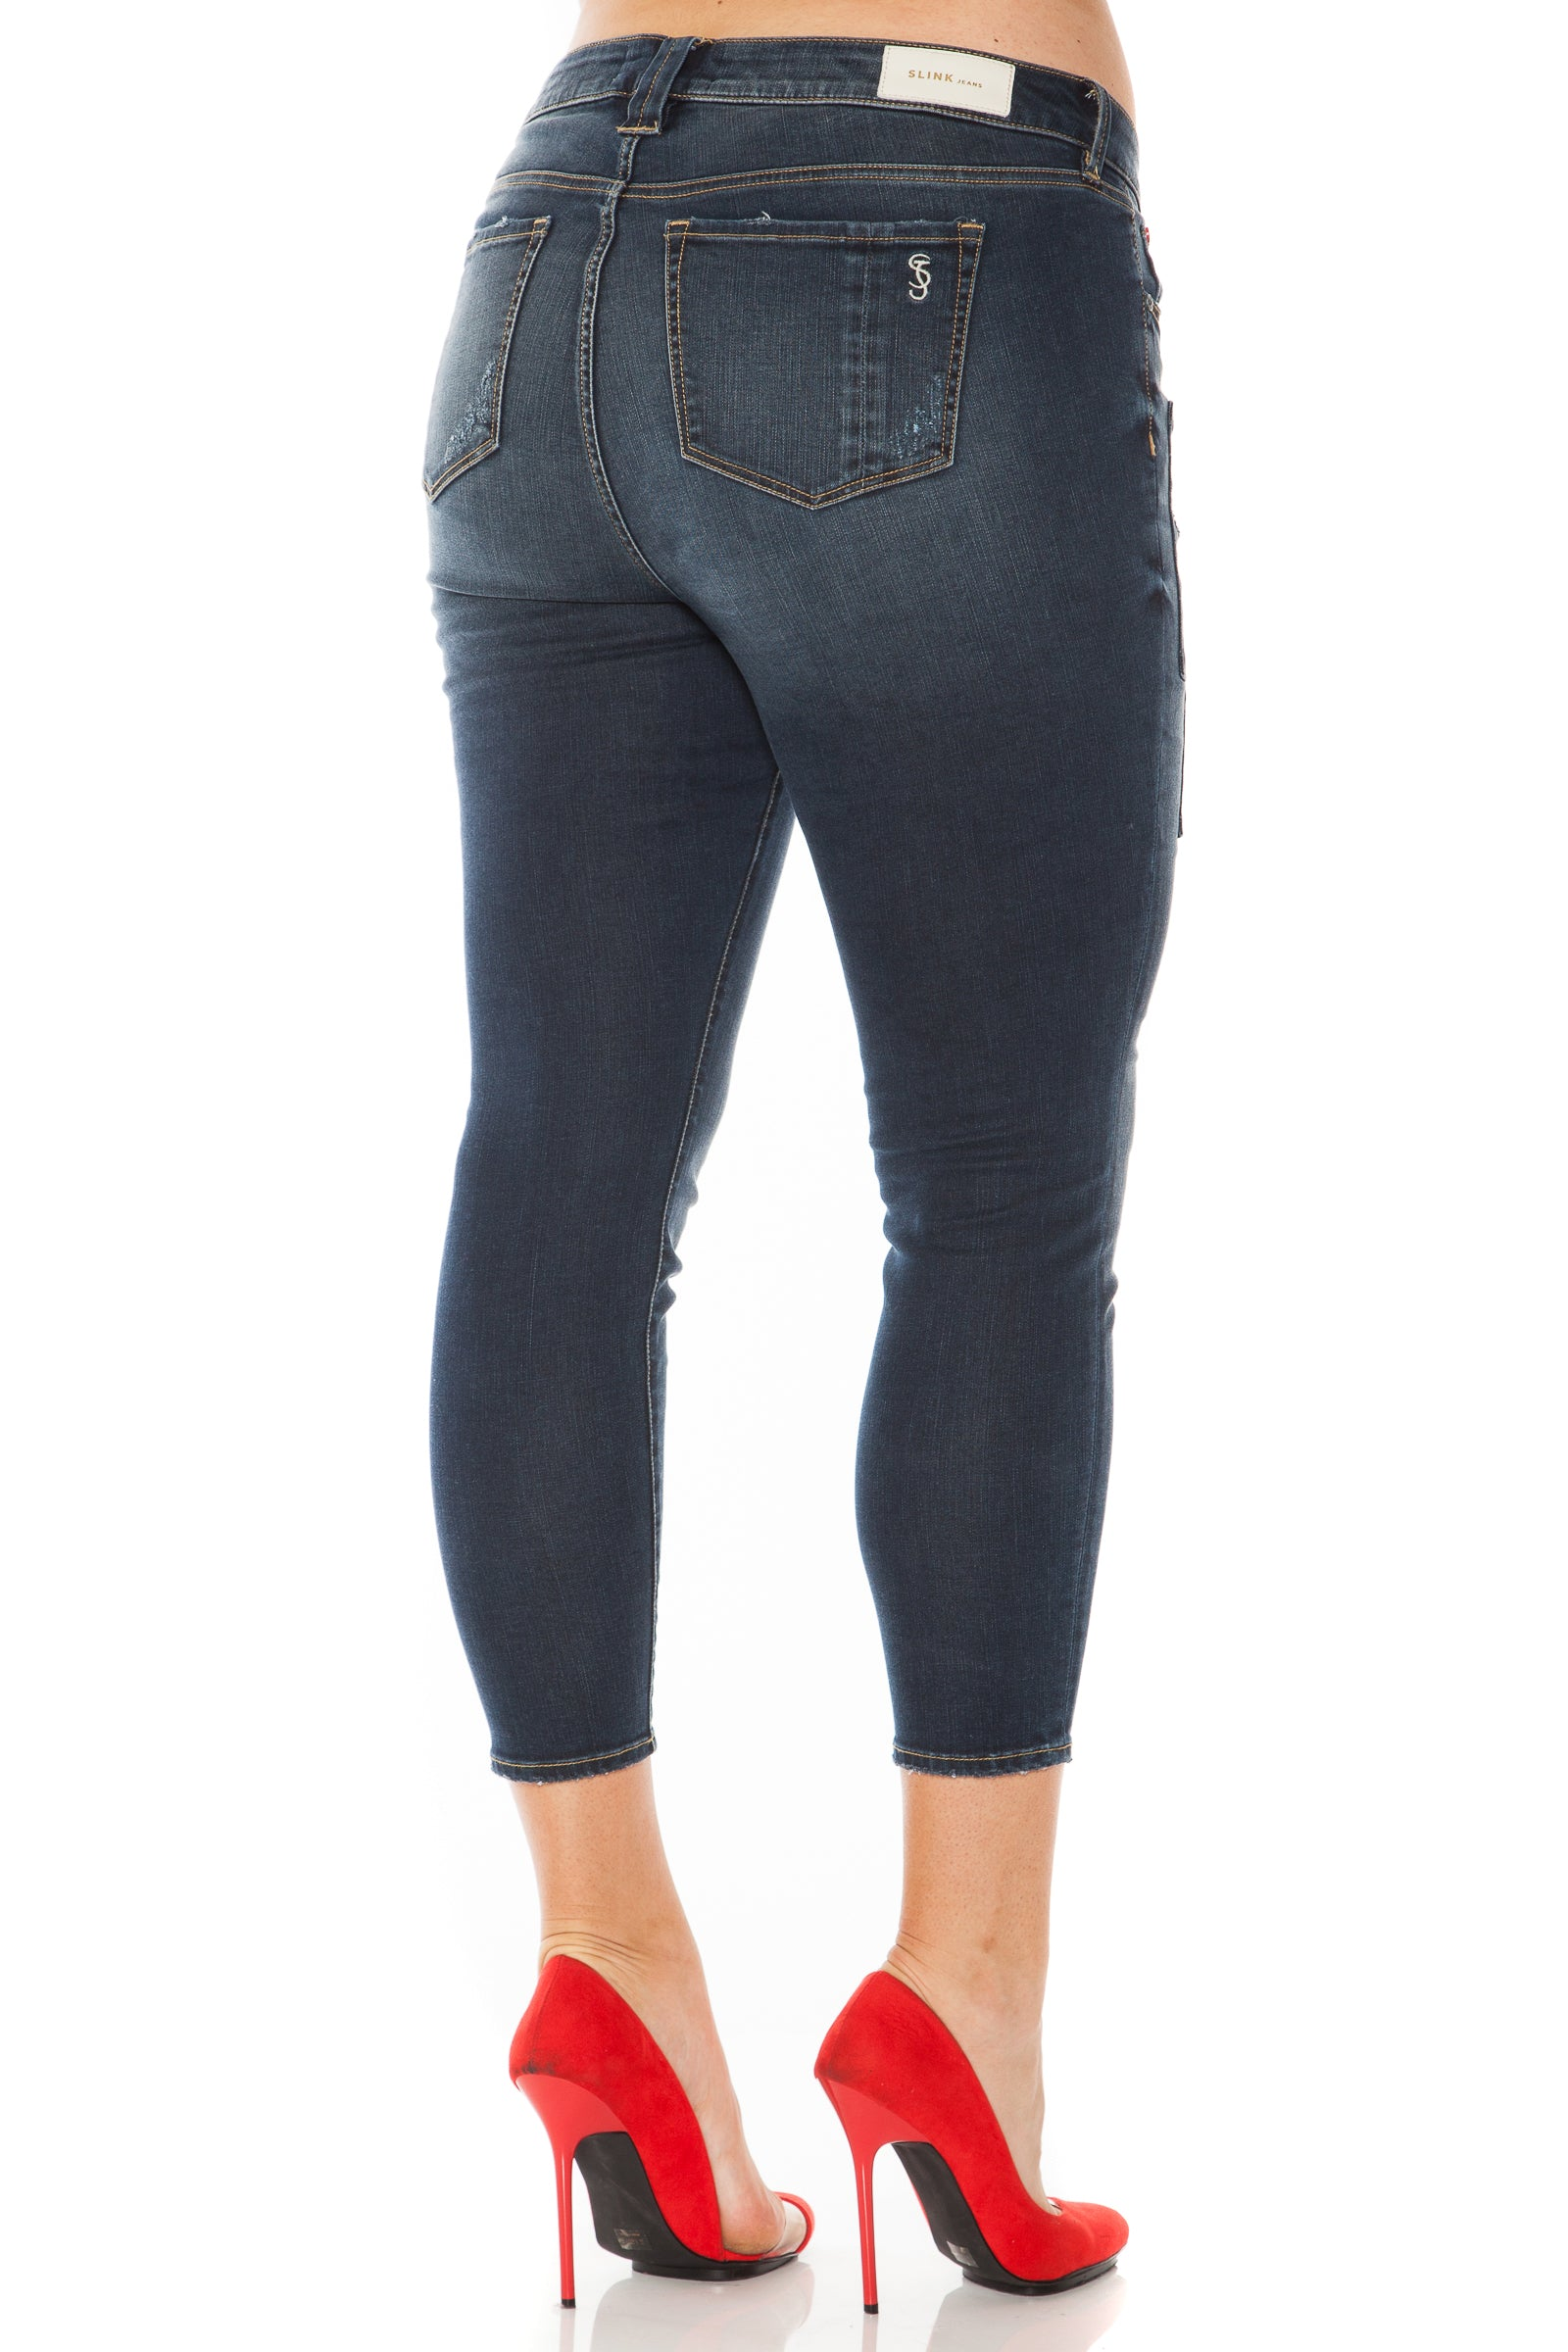 The Patchwork Ankle Jegging - TEAGAN